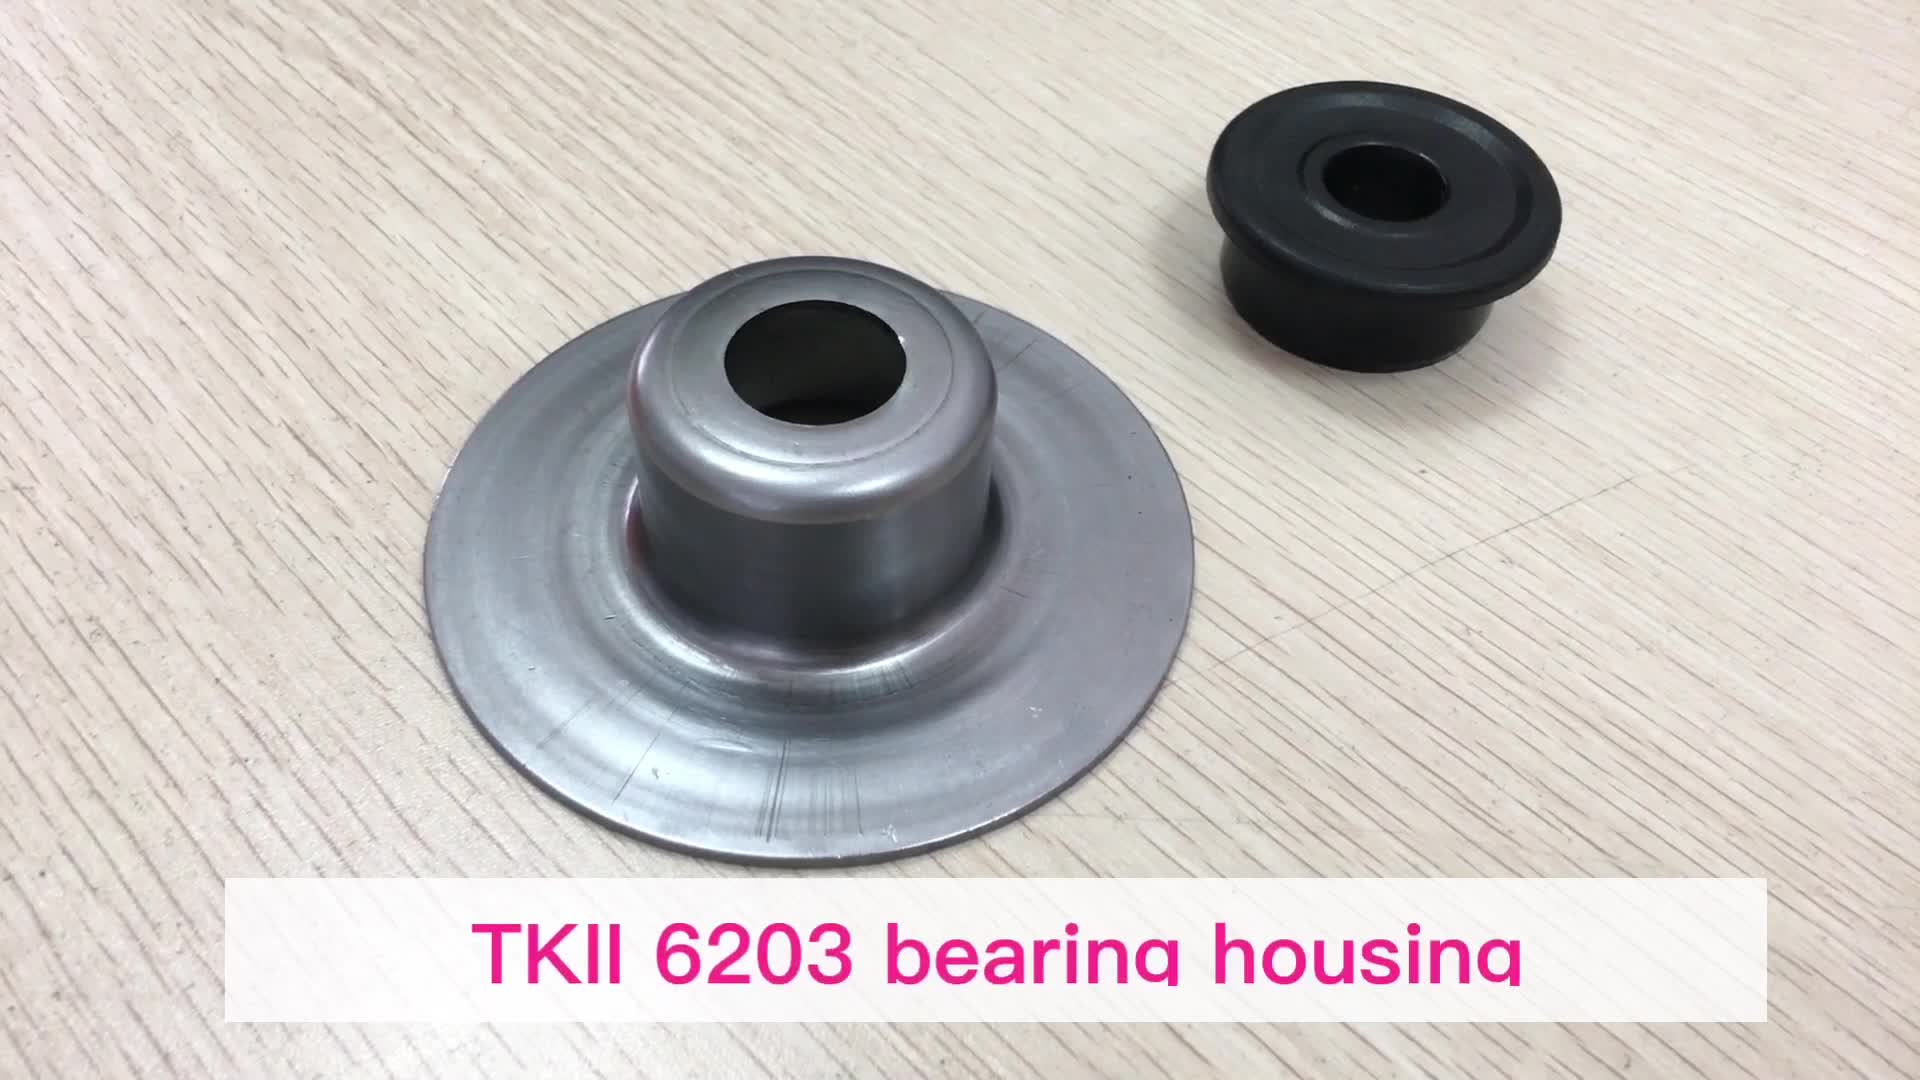 Customize steel bearing housing bearing support for 6203 bearing with labyrinth seals